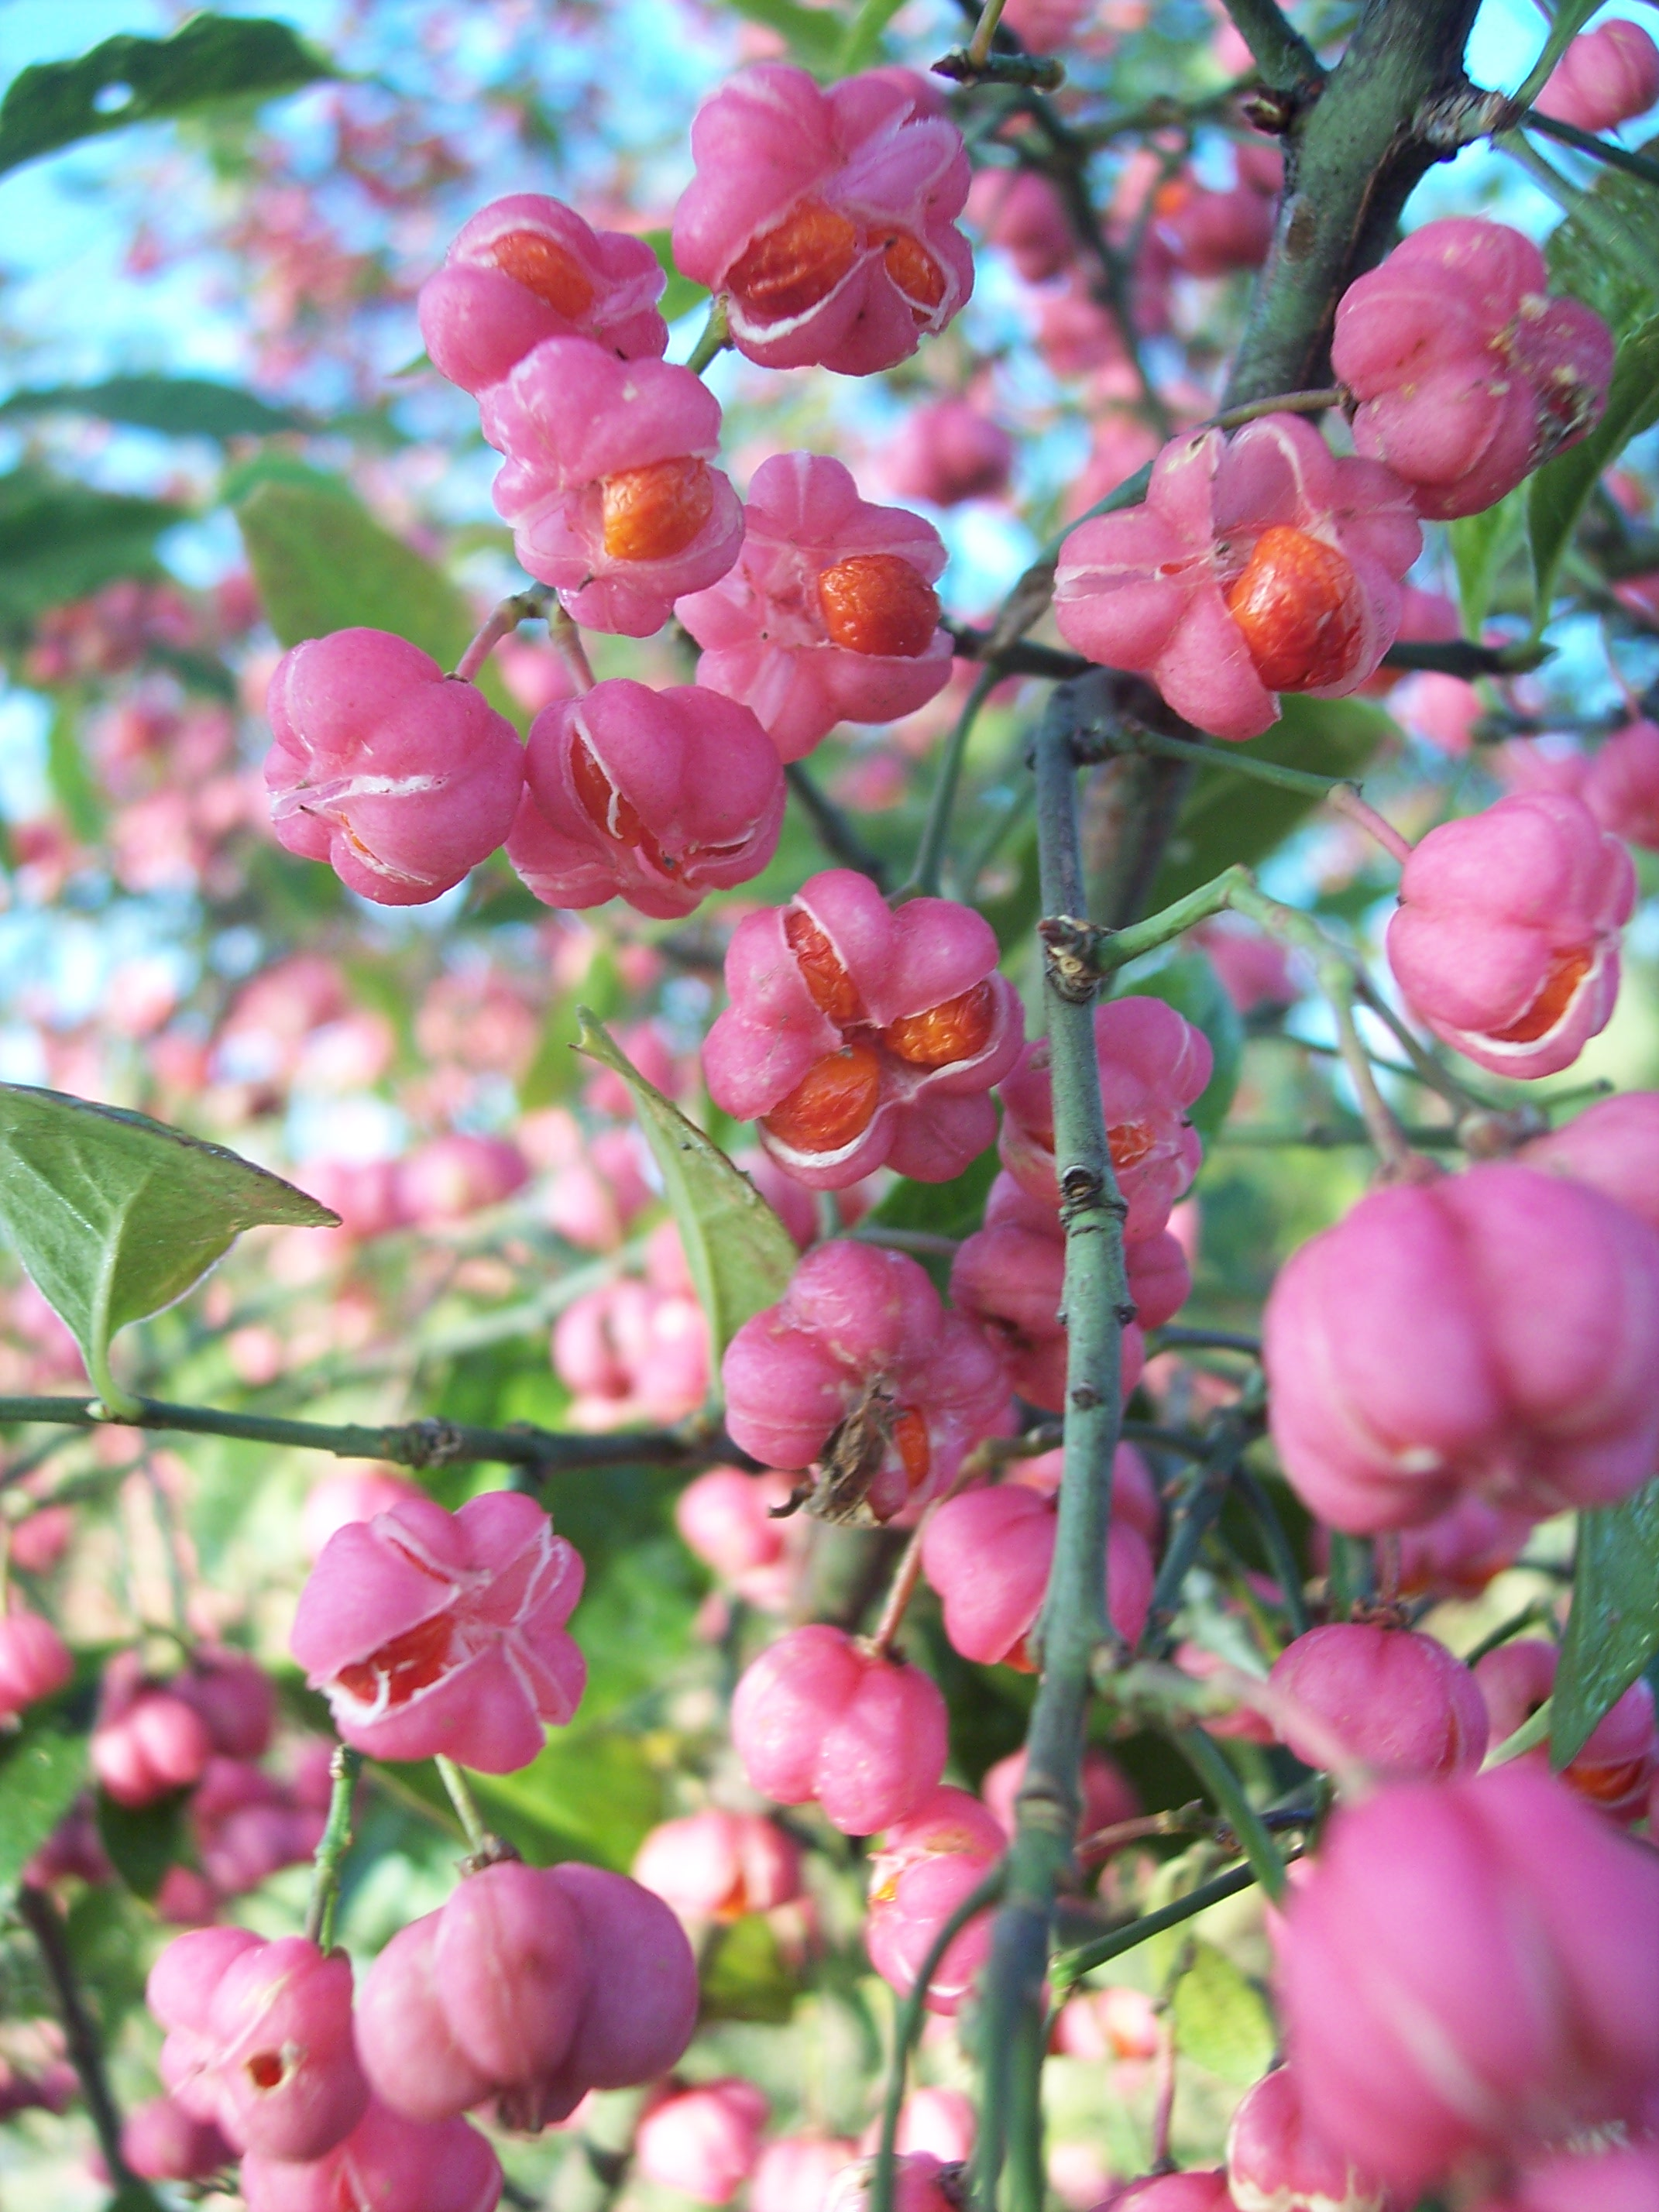 A shrub or small tree 2-6 metres tall,  spindle produces small greenish white flowers during June and July.  Between September and November it produces four lobed fruits, which are a bright coral pink (pictured).  The fruits open by splits to expose bright orange seed sheaths.  It grows in woodlands...